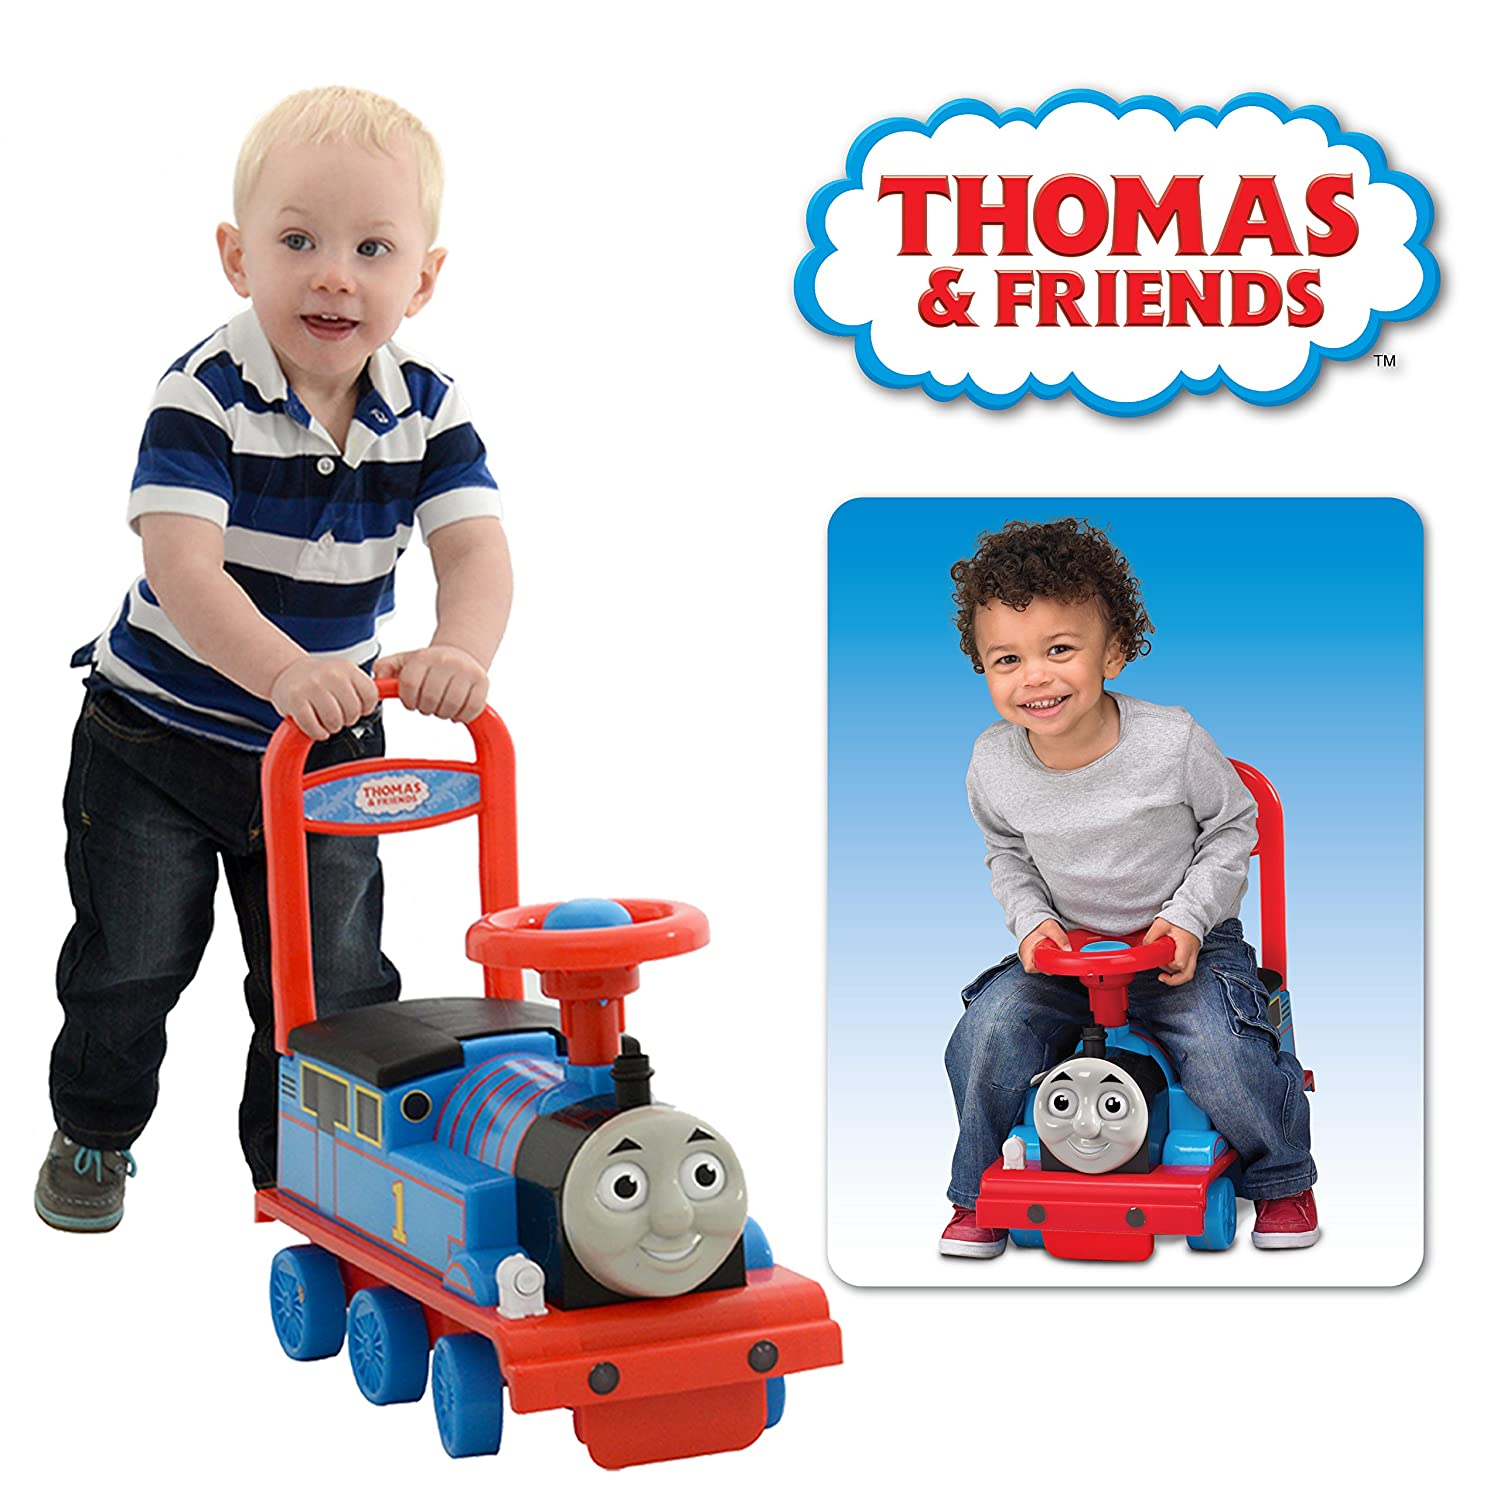 Thomas & Friends Engine Ride Amazon Toys & Games